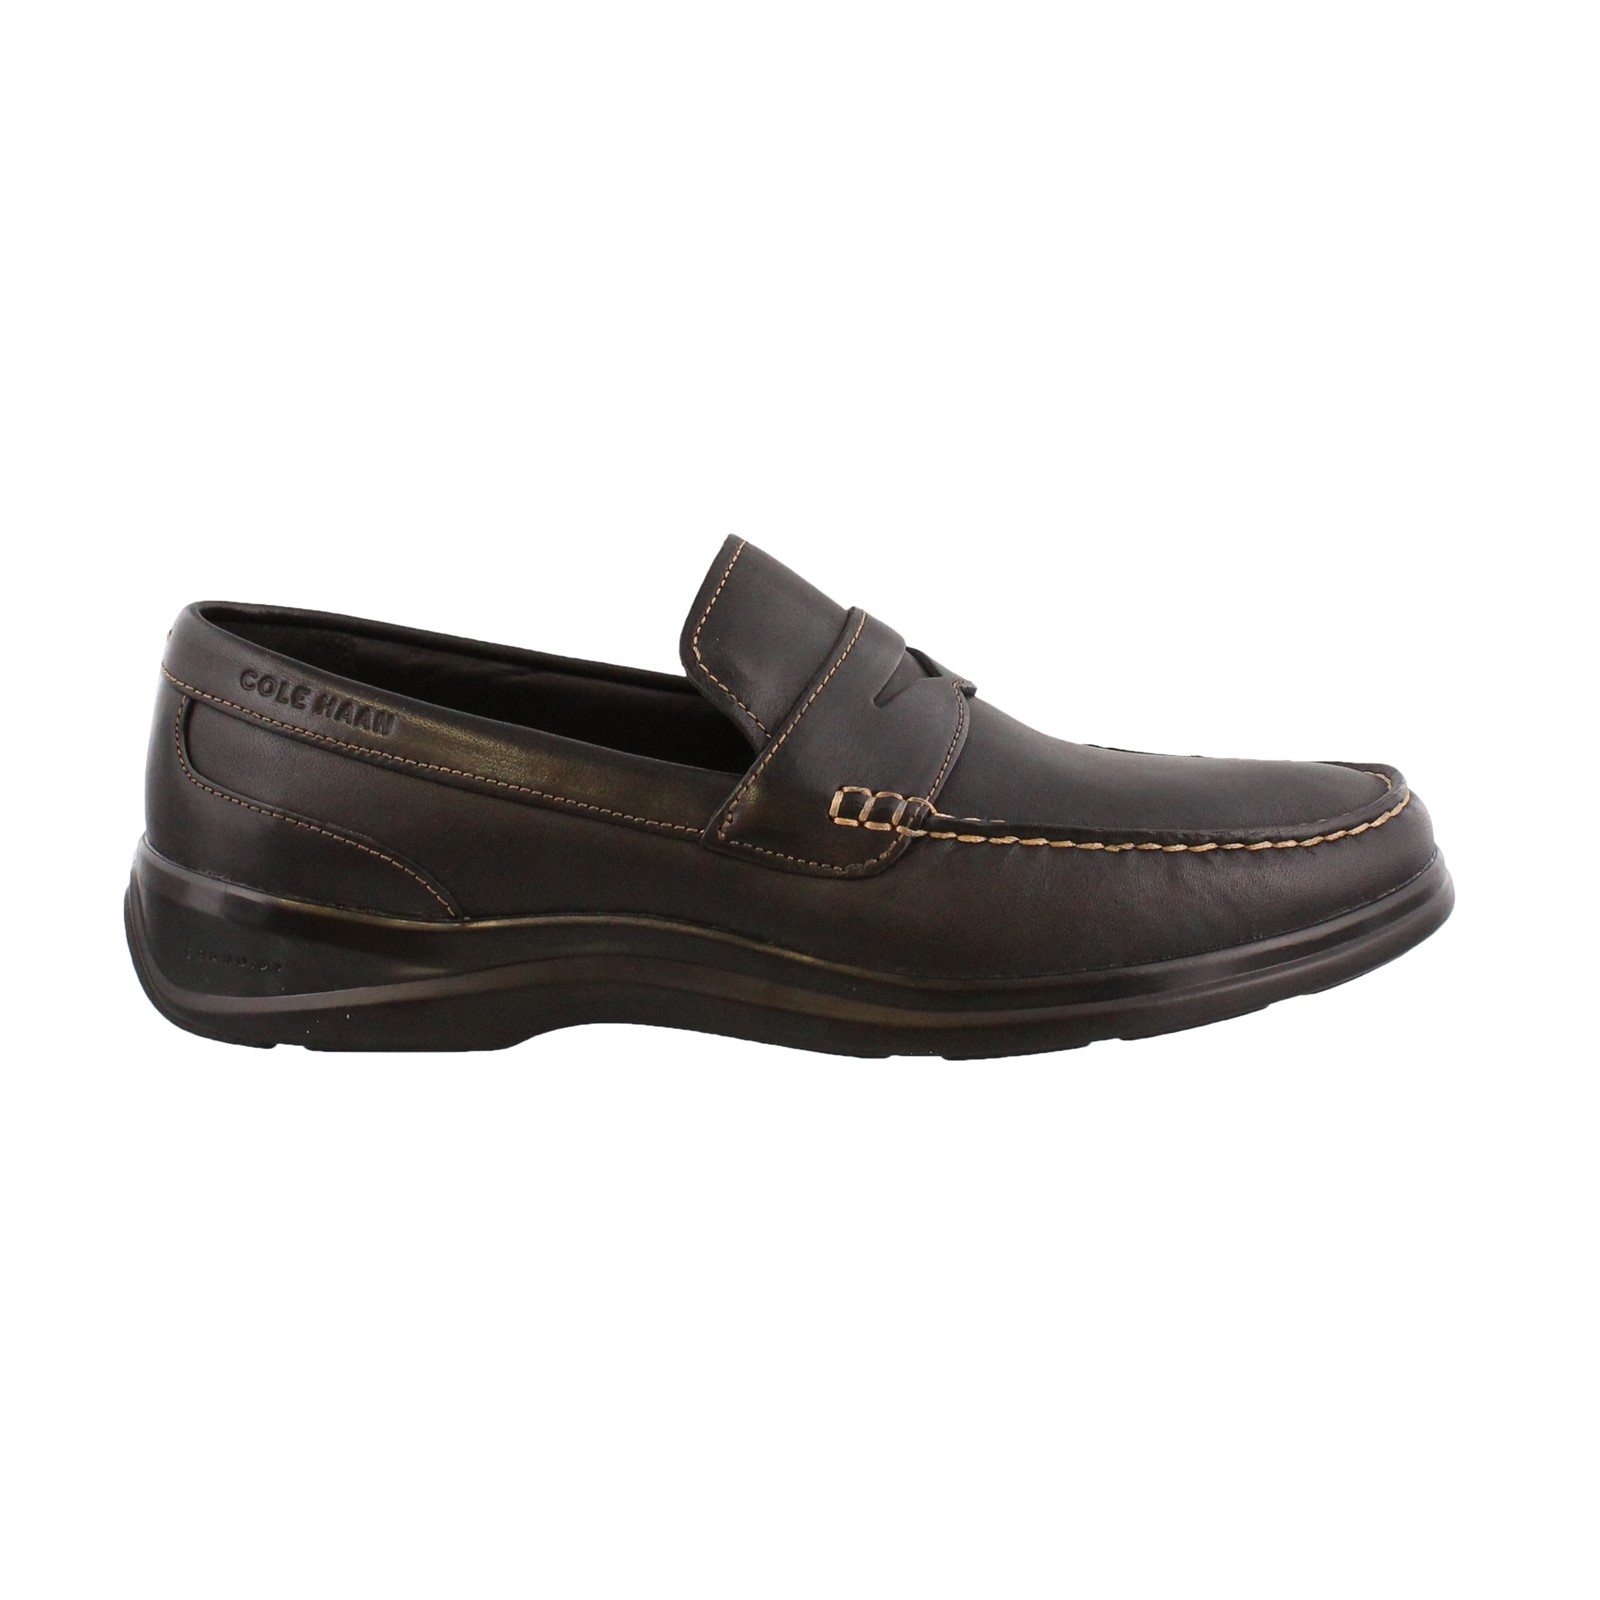 d4b4a4ba192 Men s Cole Haan